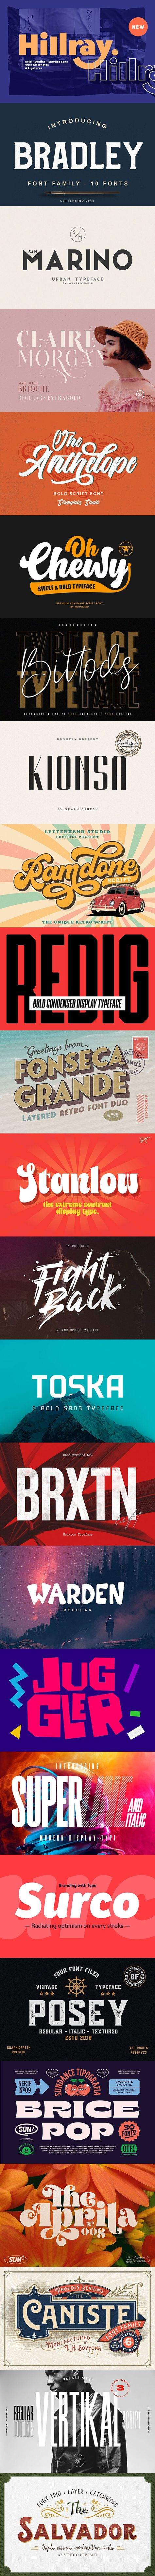 25 Stunning Bold Display Fonts